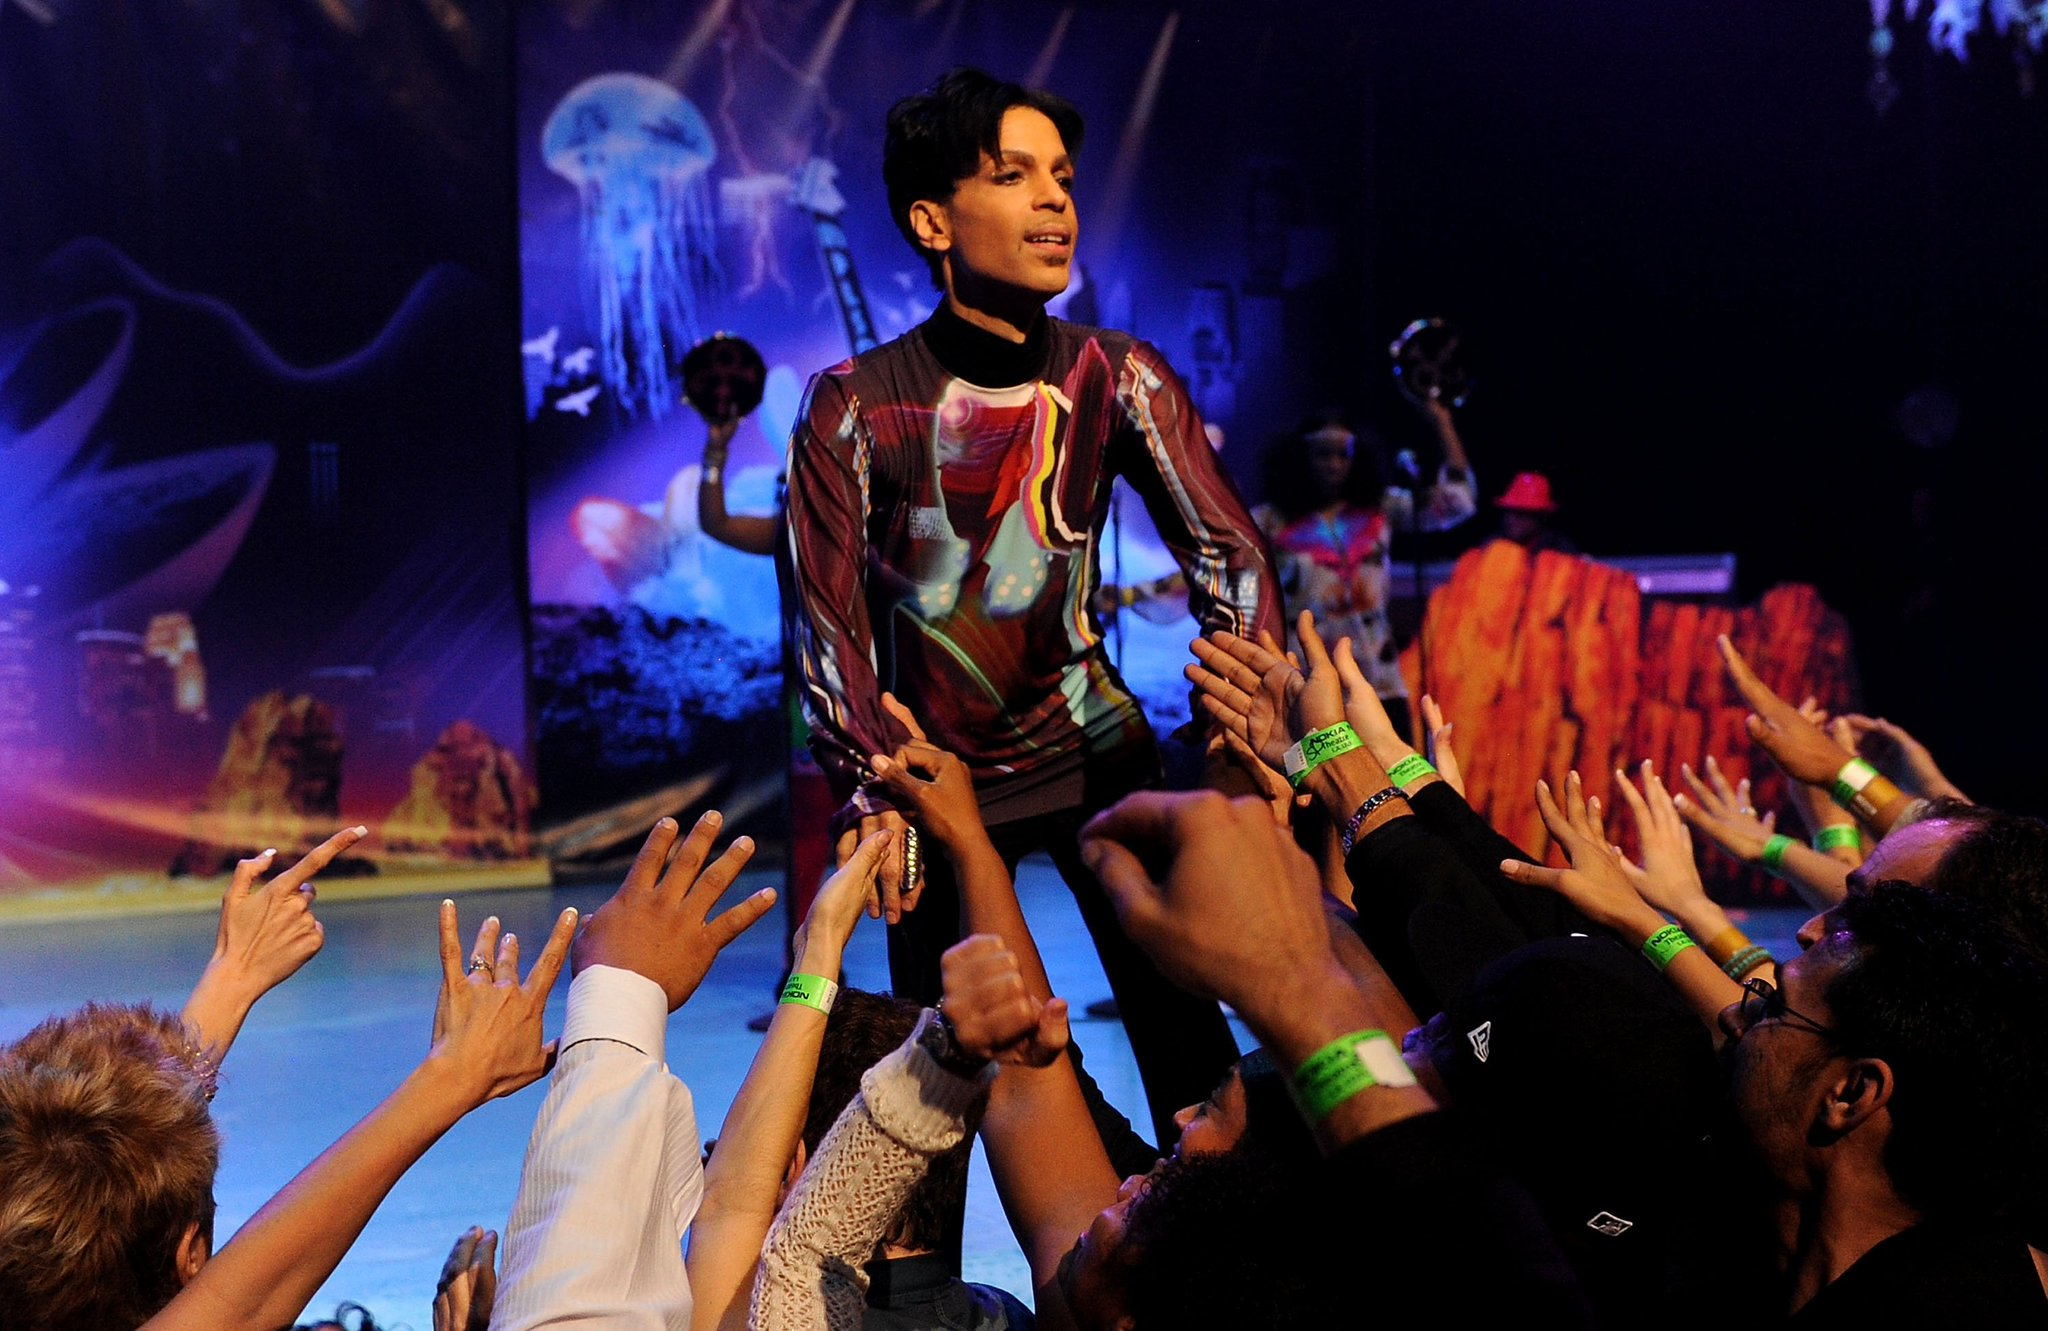 Happy Birthday and Rest in Peace to the LEGENDARY PRINCE!